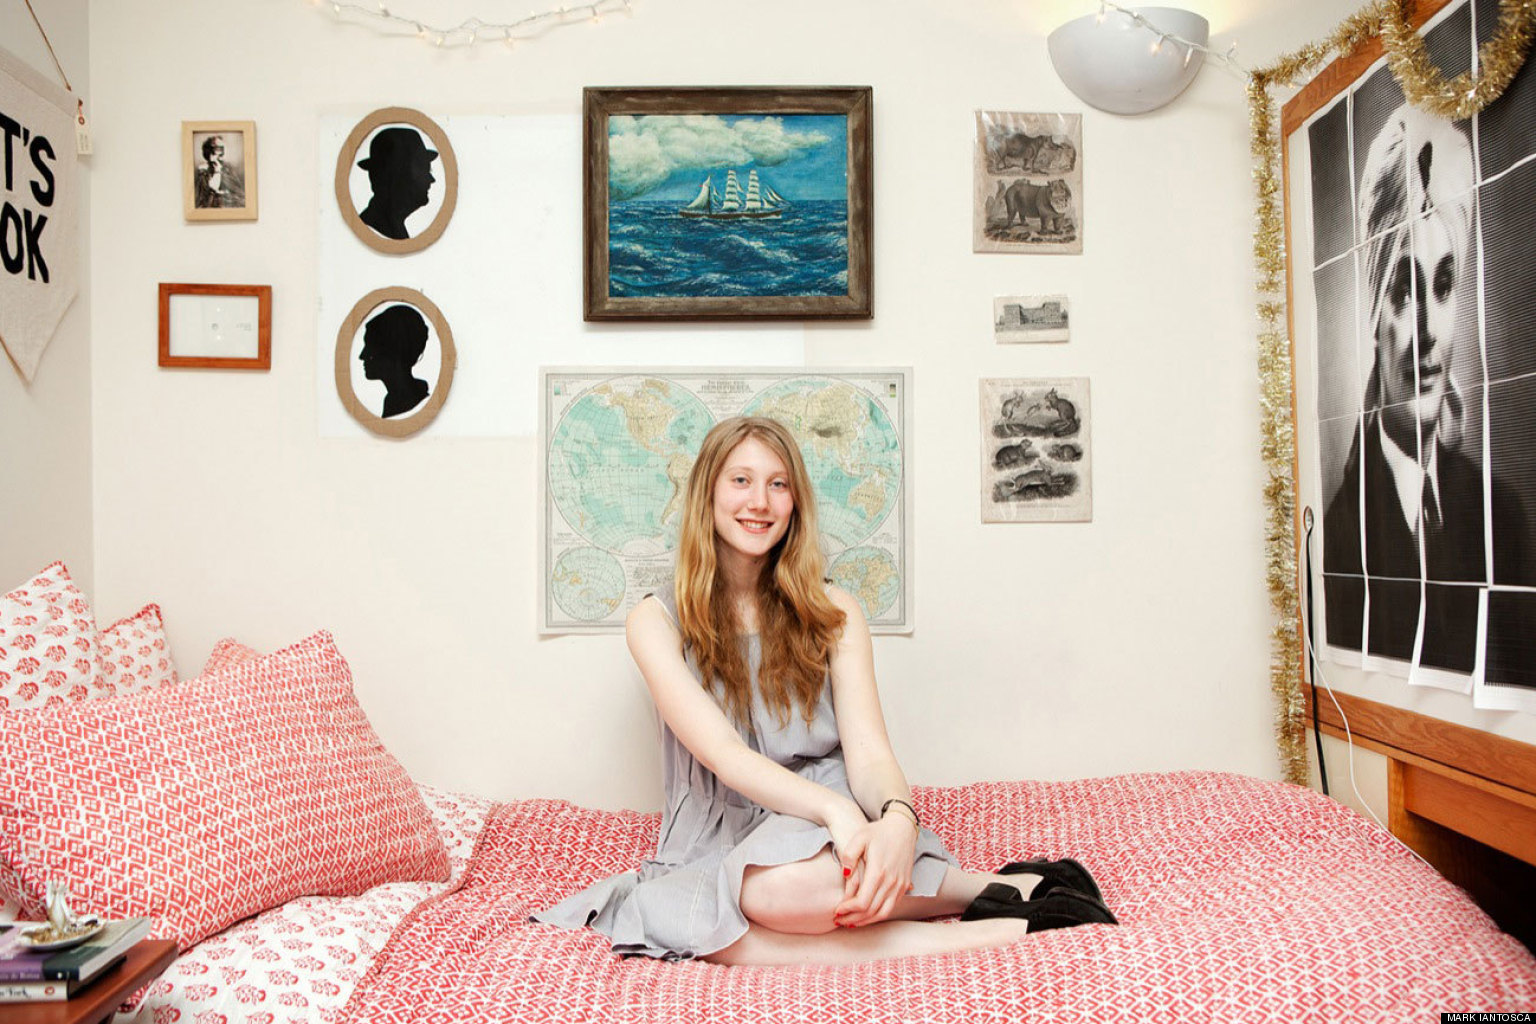 5 must know tricks for decorating your dorm room